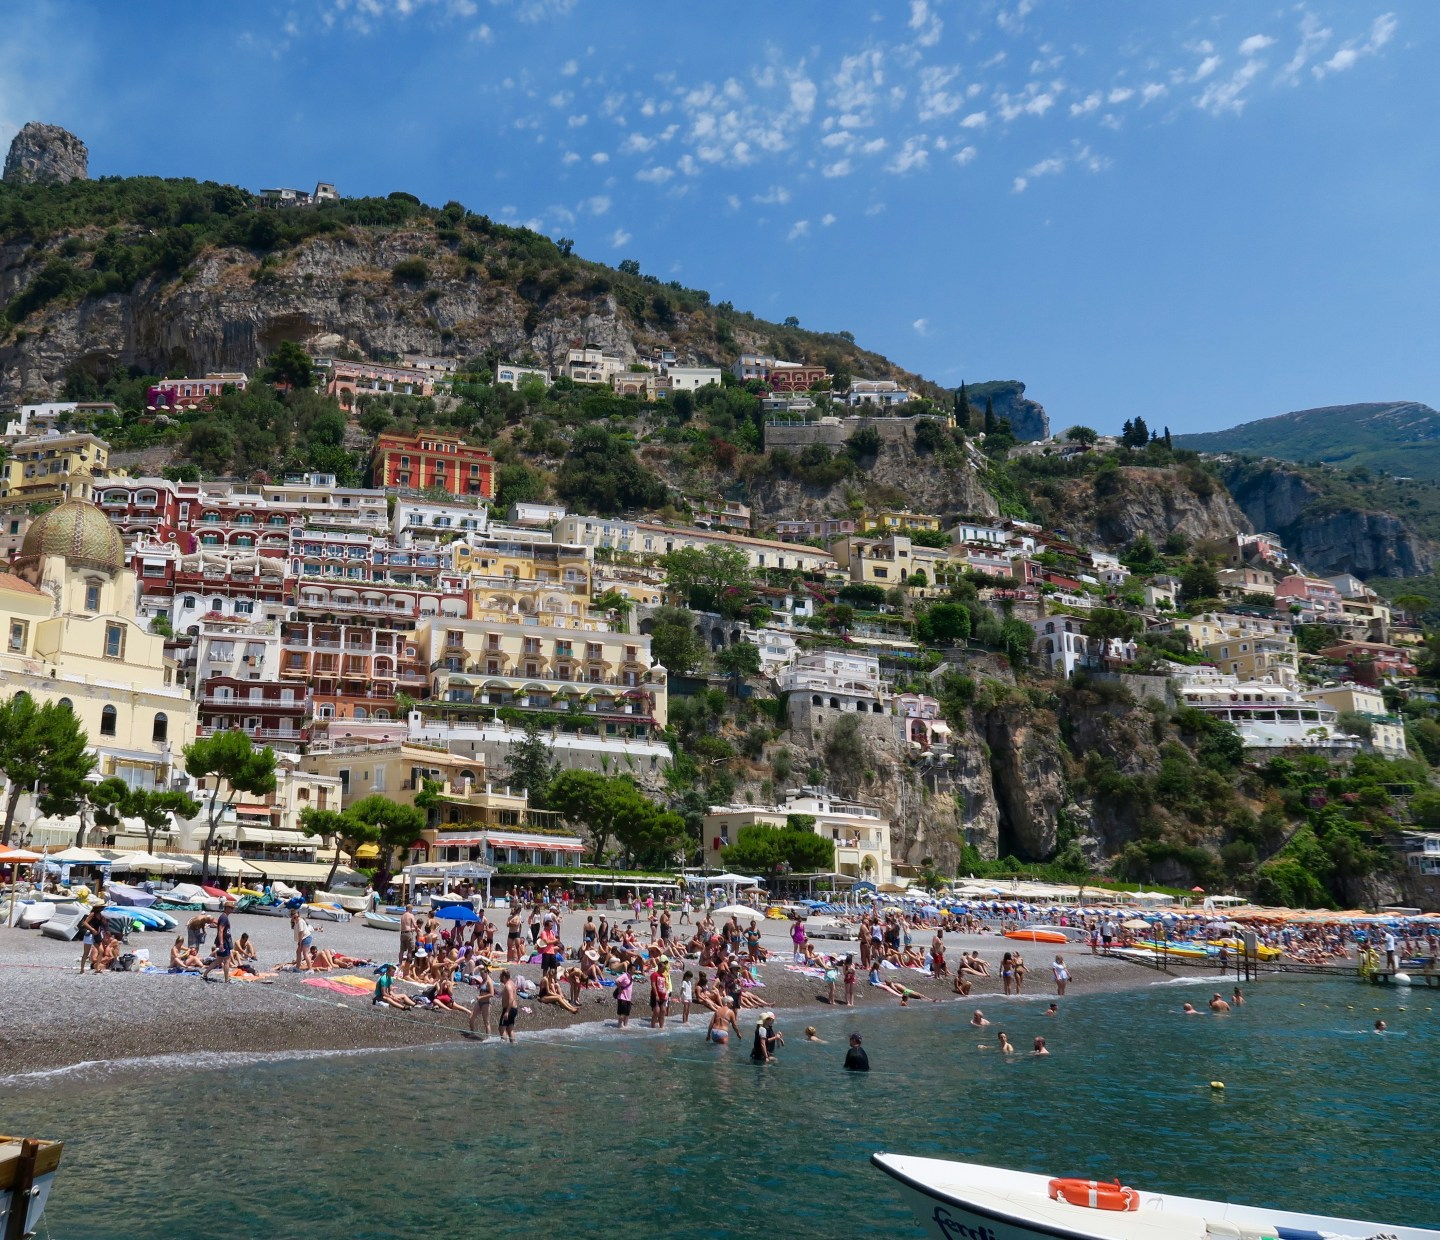 The-Frilly-Diaries-view-of-Positano. Costiera-Amalfitana-on-the-road